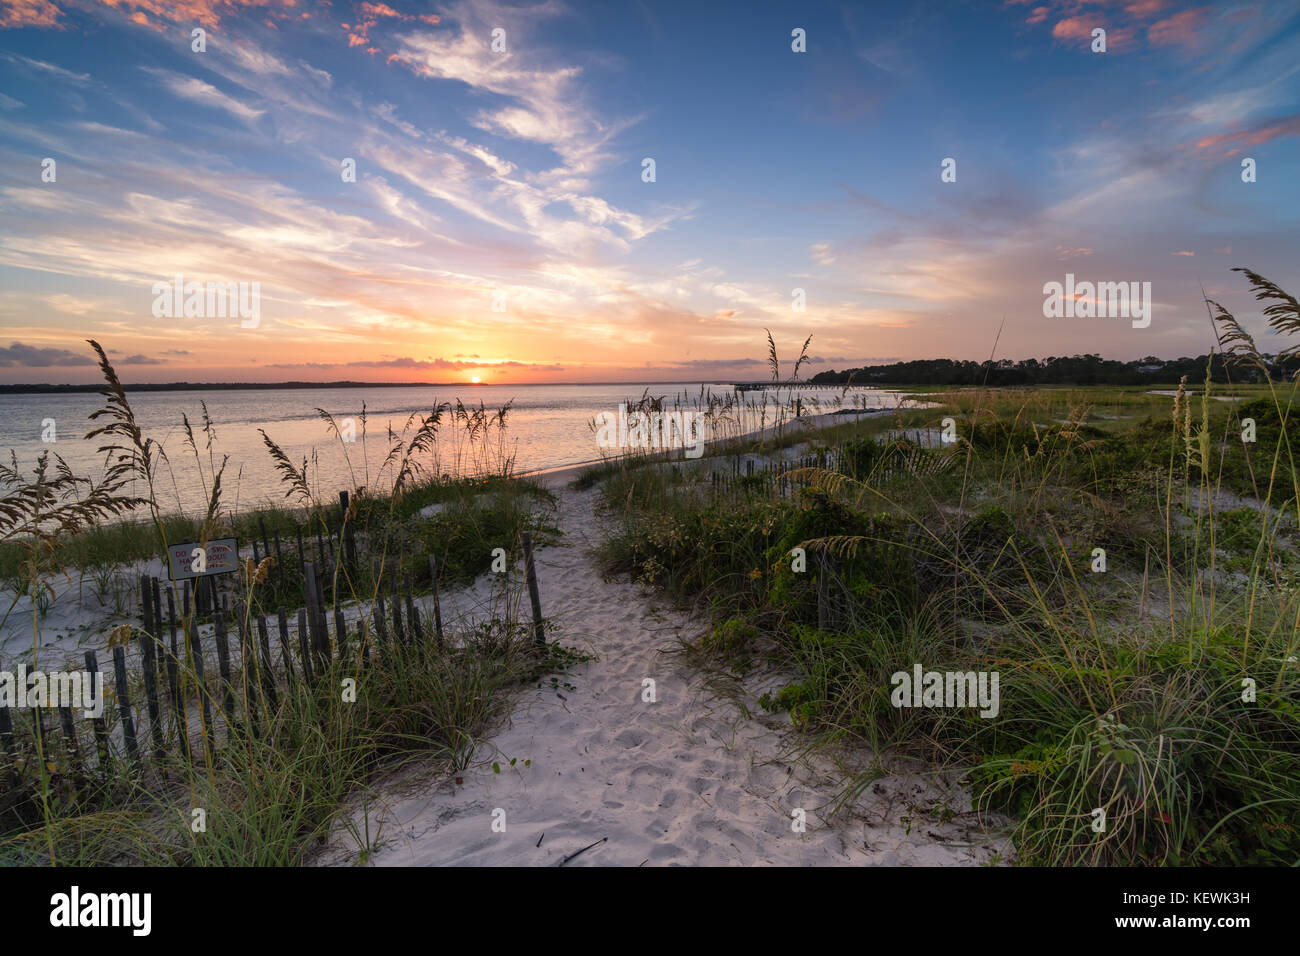 Beautiful sunset through the dunes of the South End of Amelia Island, Florida - Stock Image